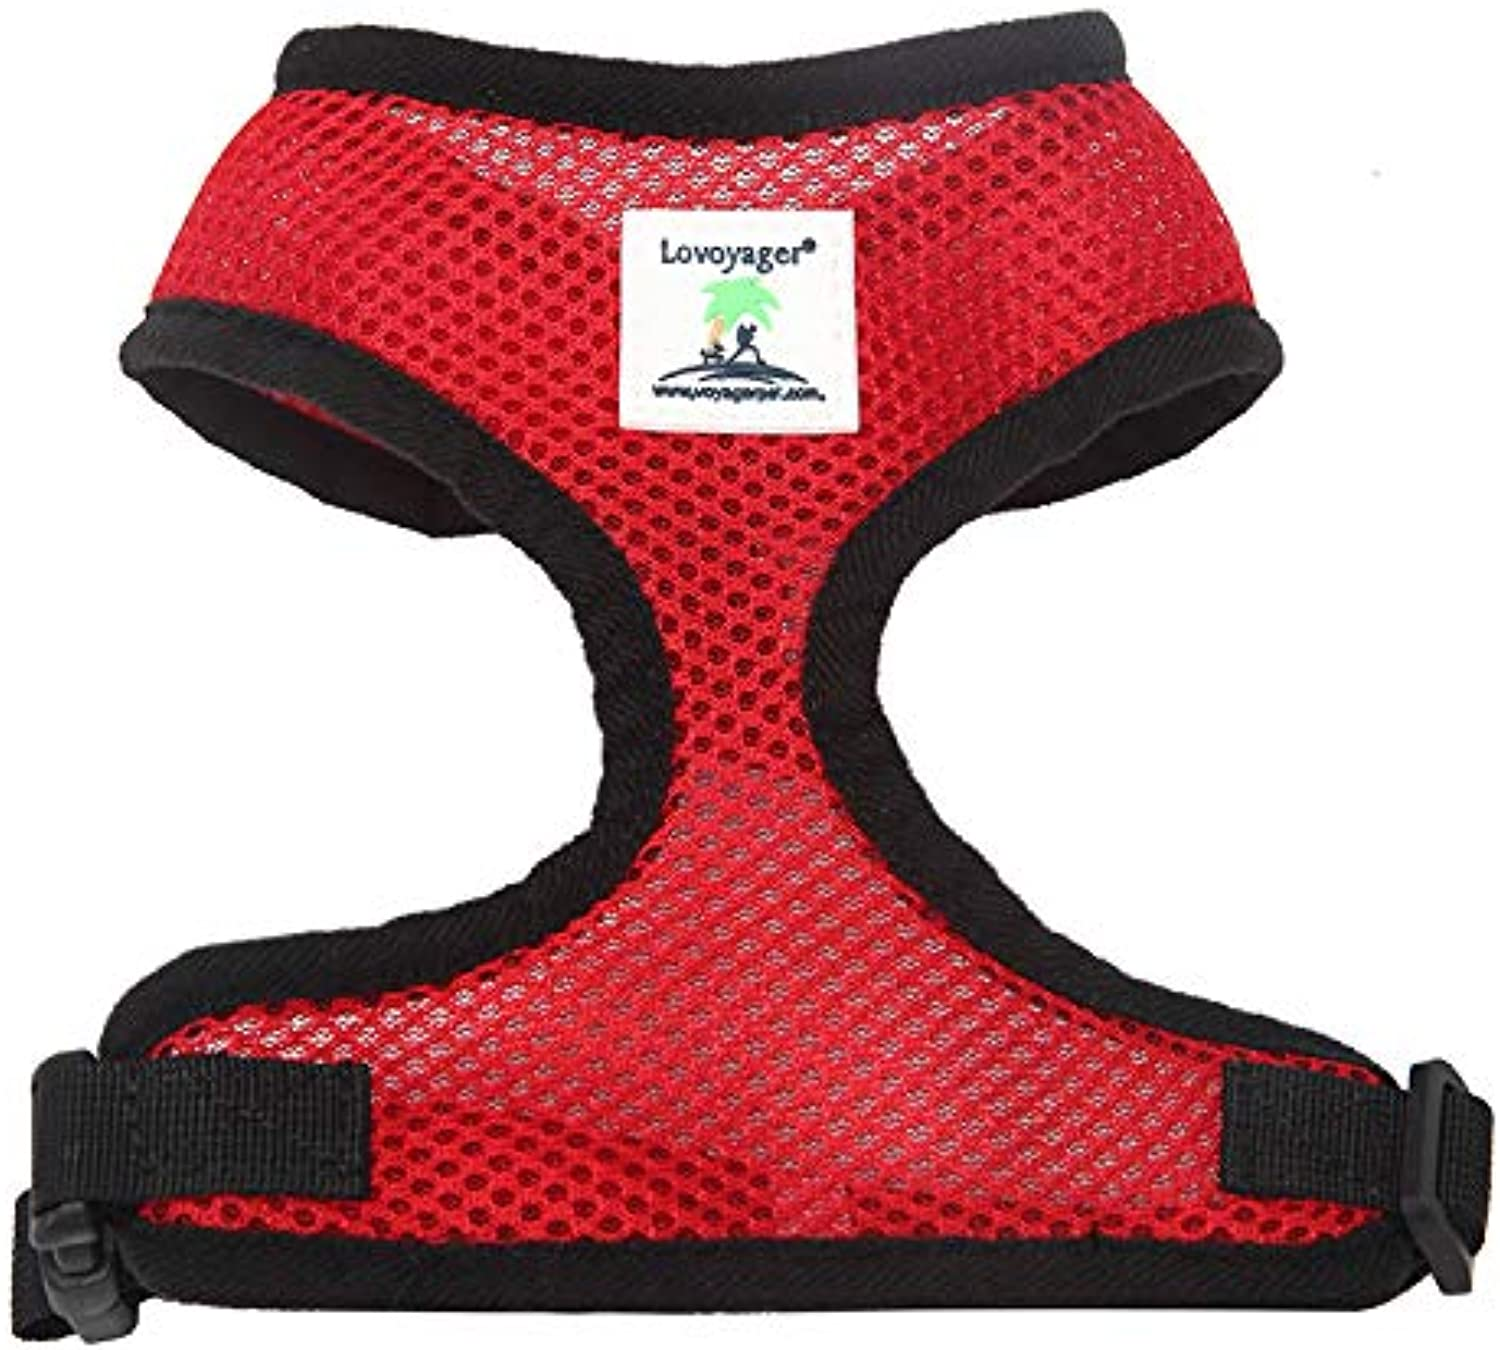 LOVOYAGER Soft, Comfort Small Dog Harness, NoPull Pet Harness